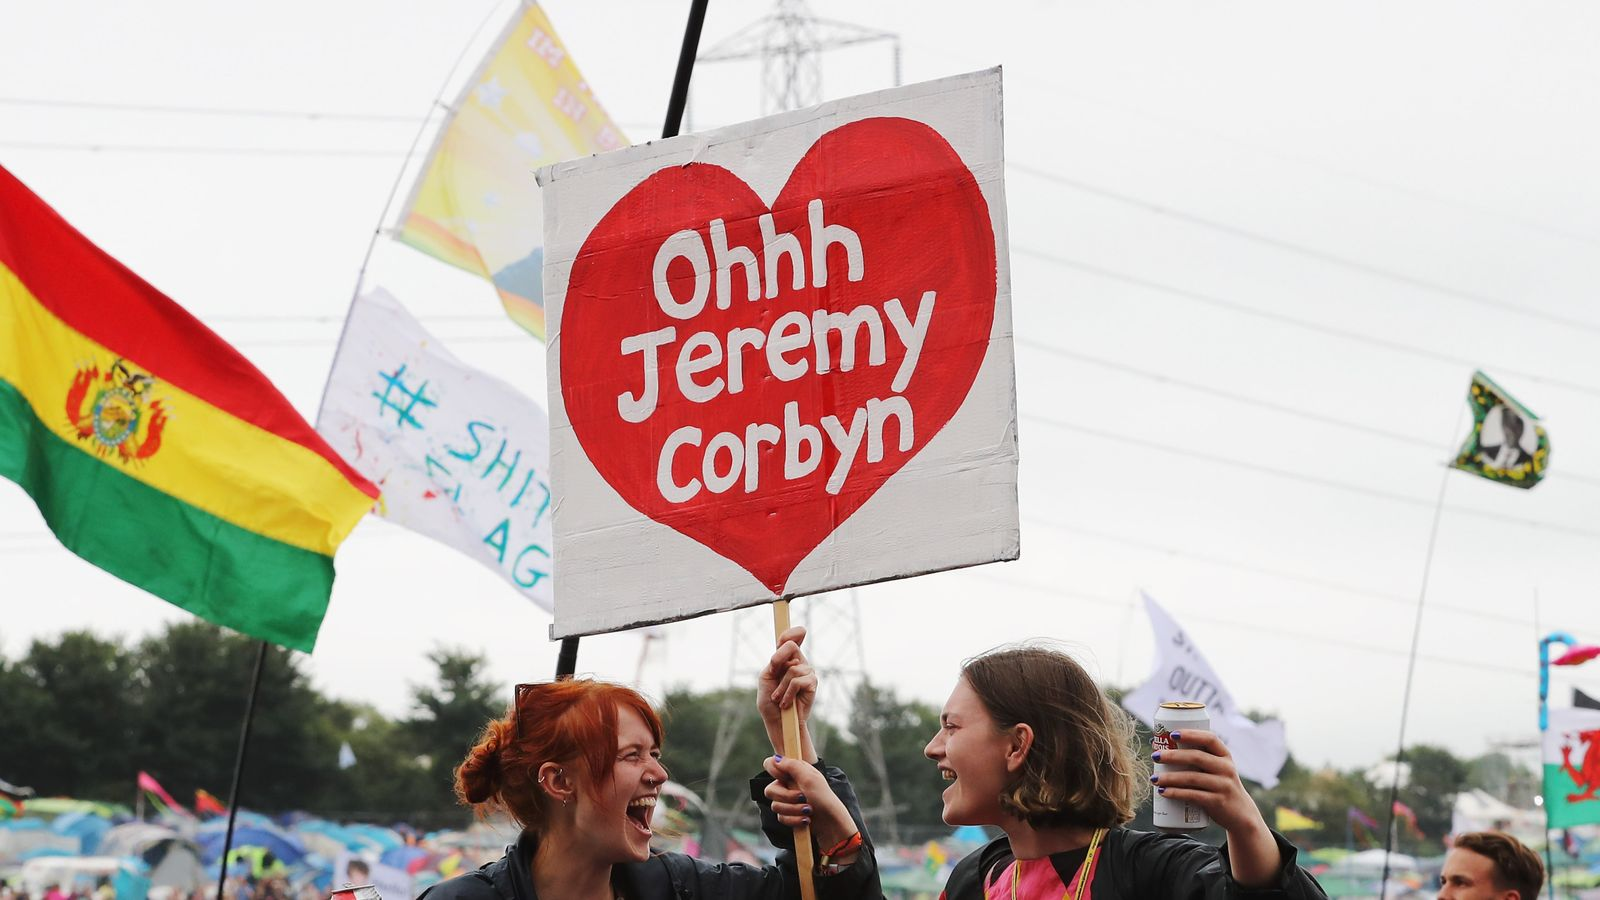 One of the banners with the Labour leader's name on it